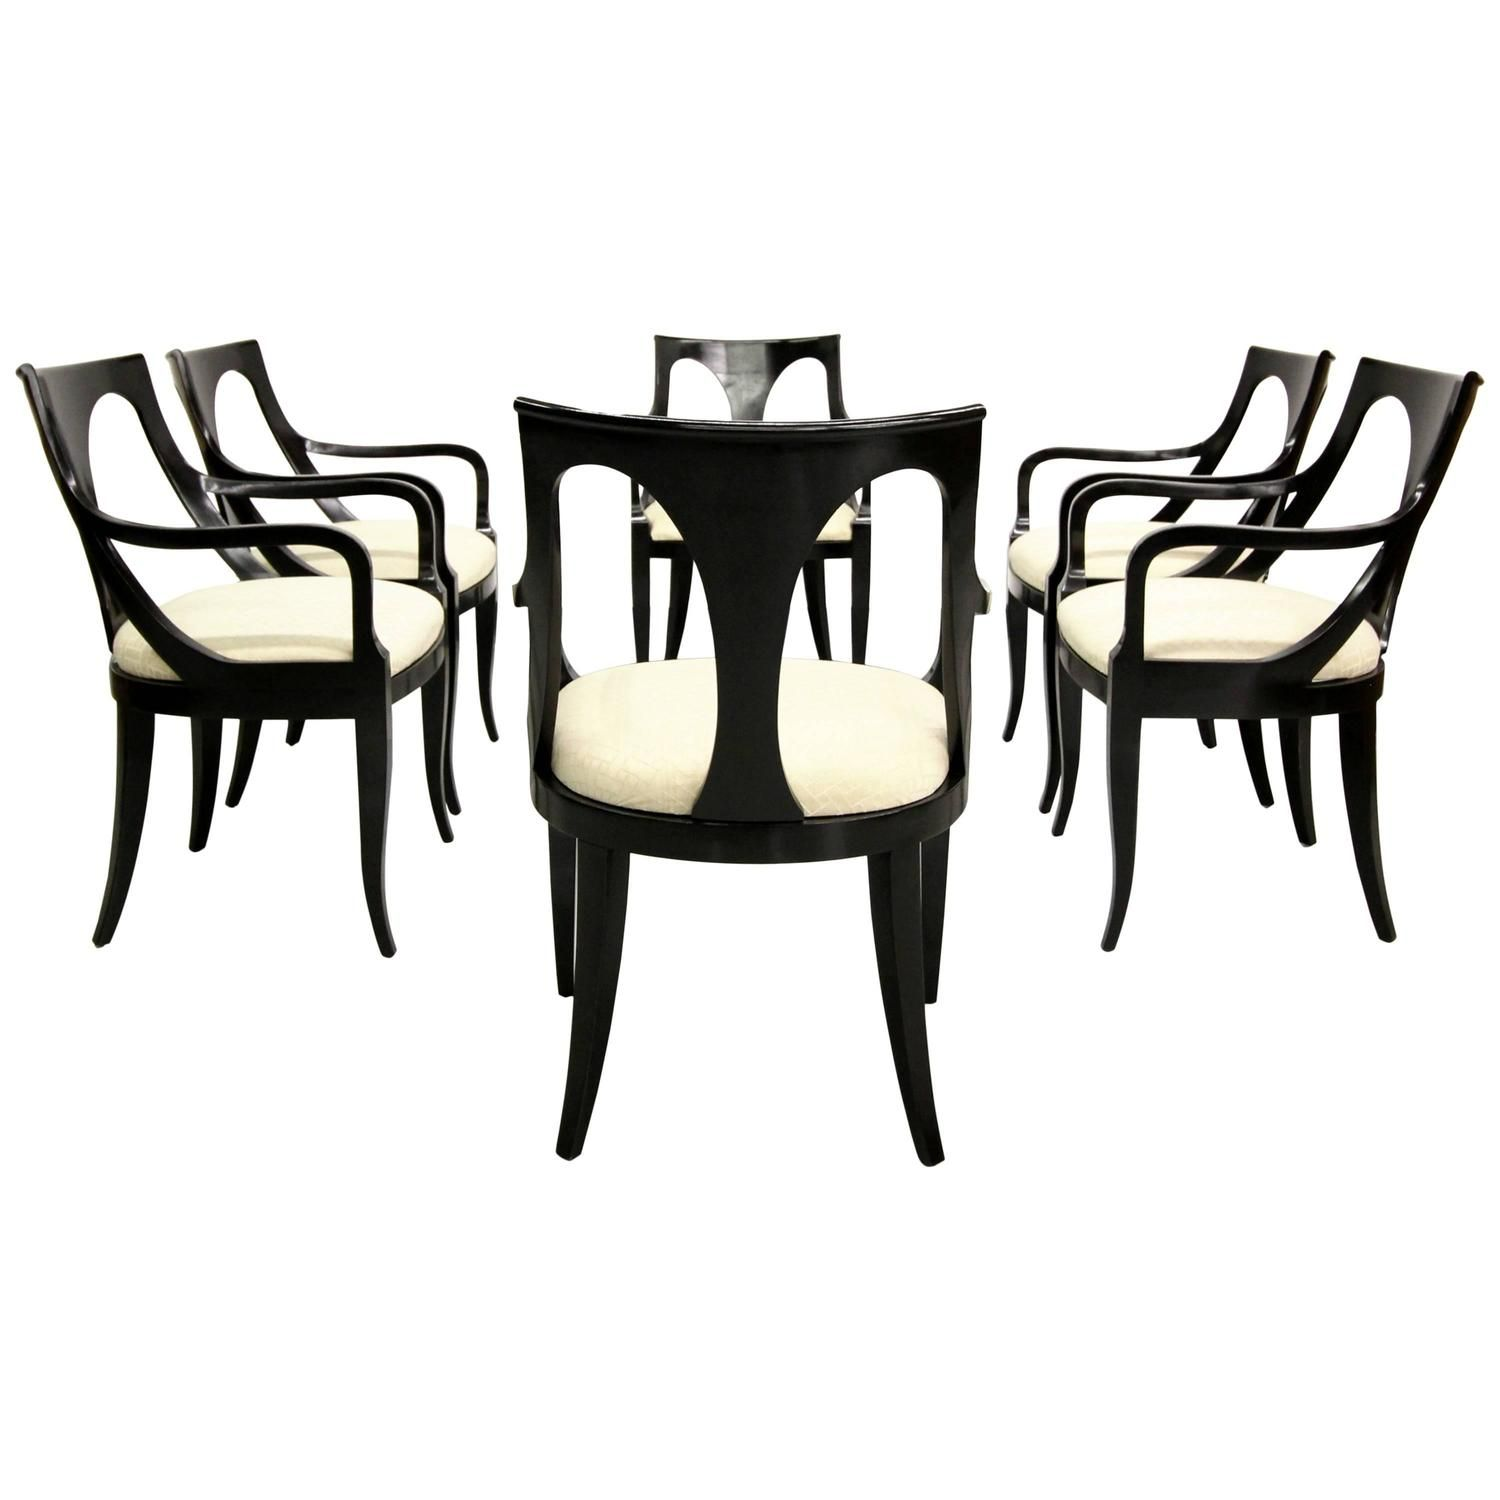 Set Of Six Black Mid Century Modern Dining Chairs By Kindel Furniture